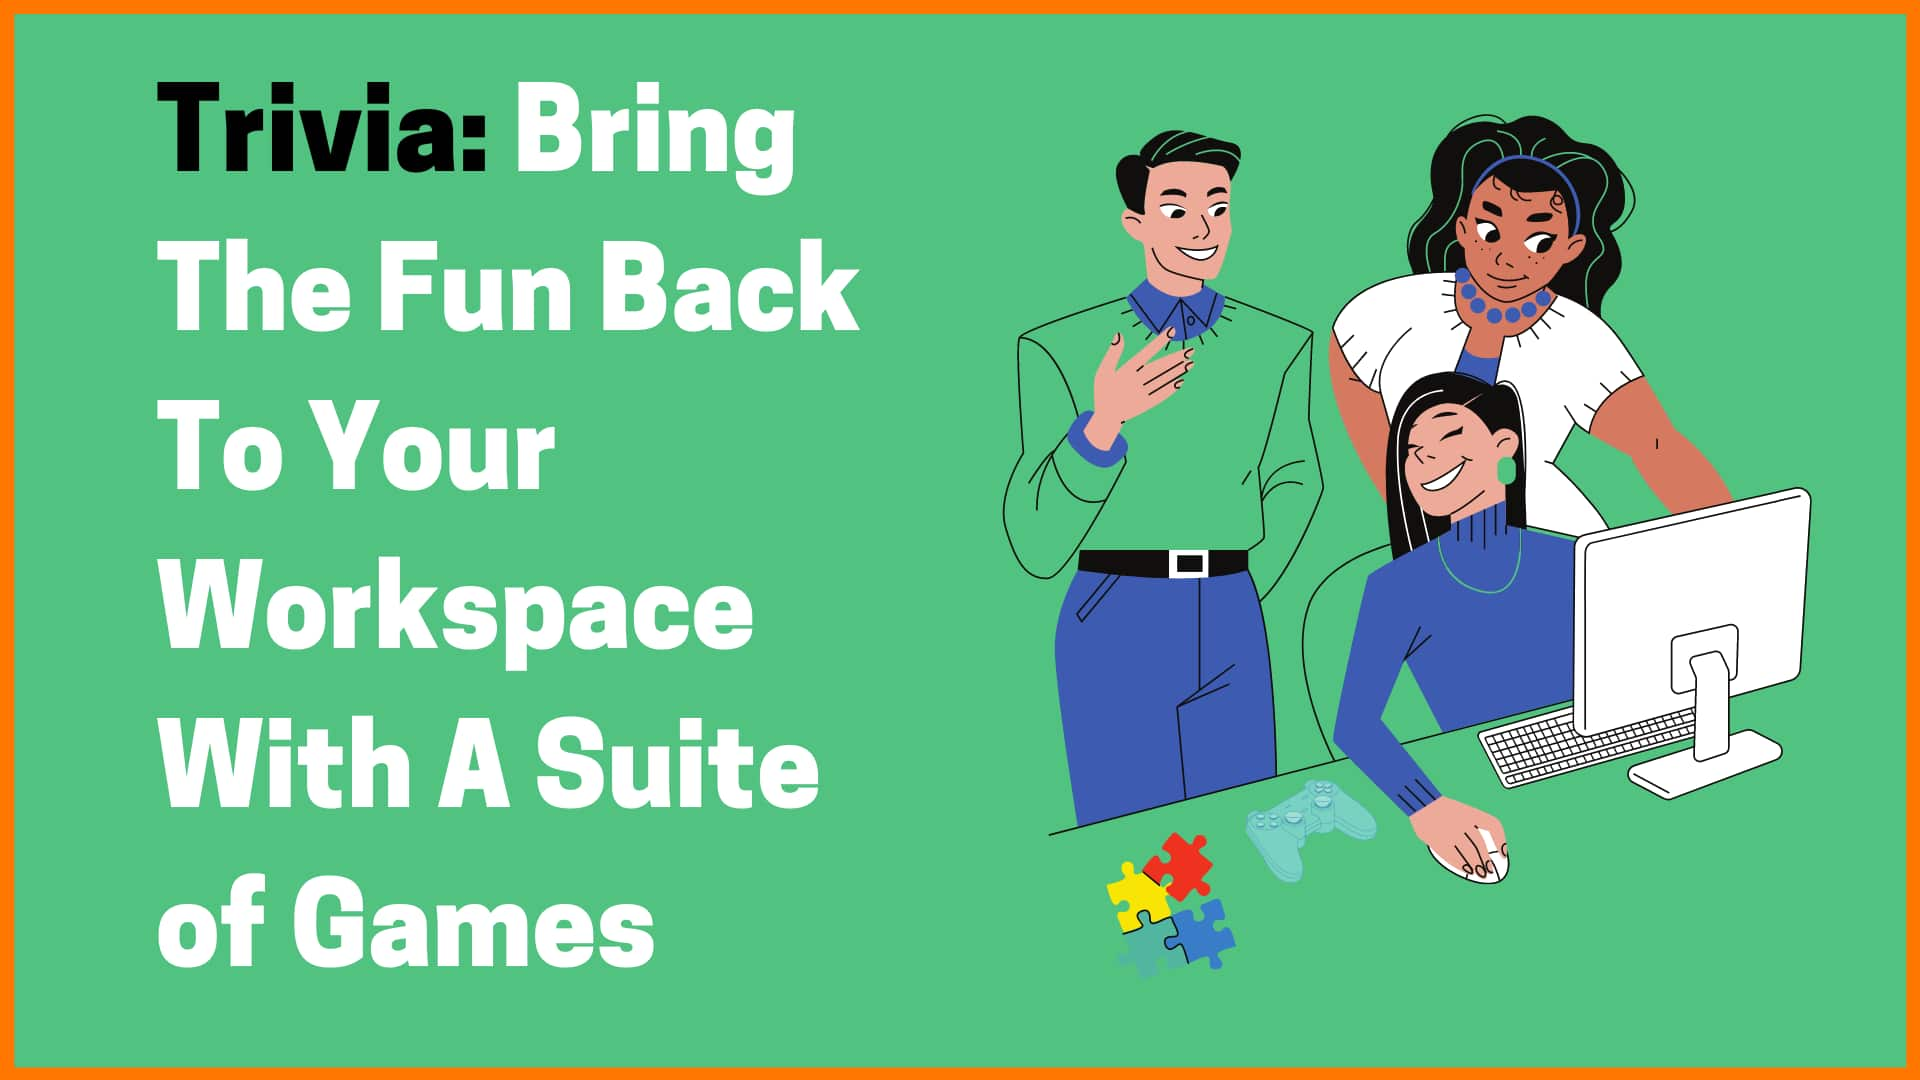 Trivia: Bring The Fun Back To Your Workspace